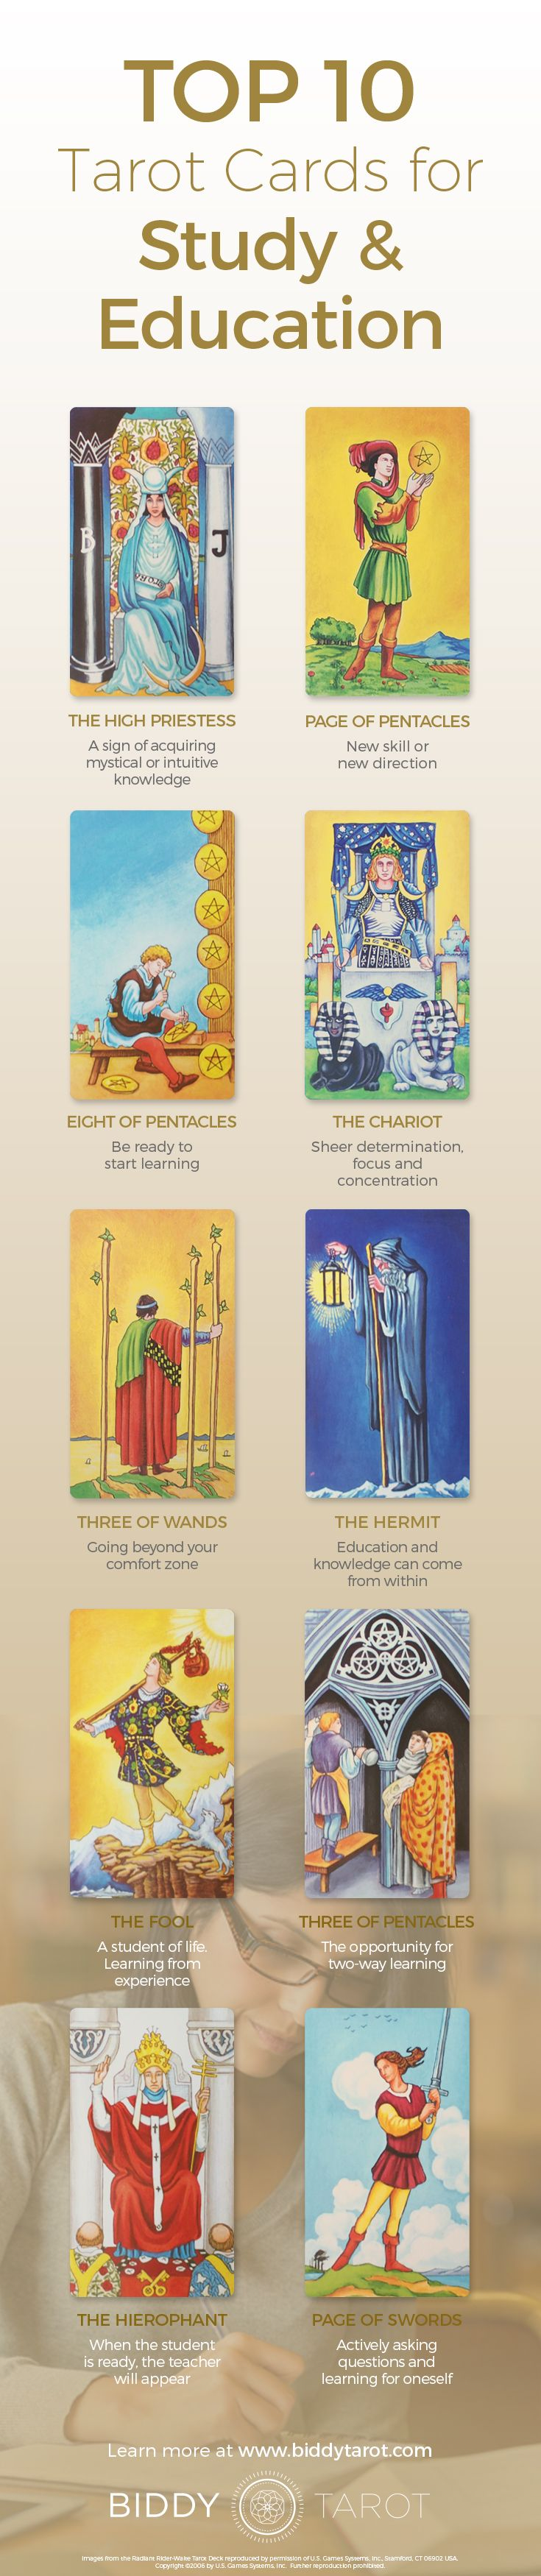 The Top 10 Best Tarot Books | Biddy Tarot